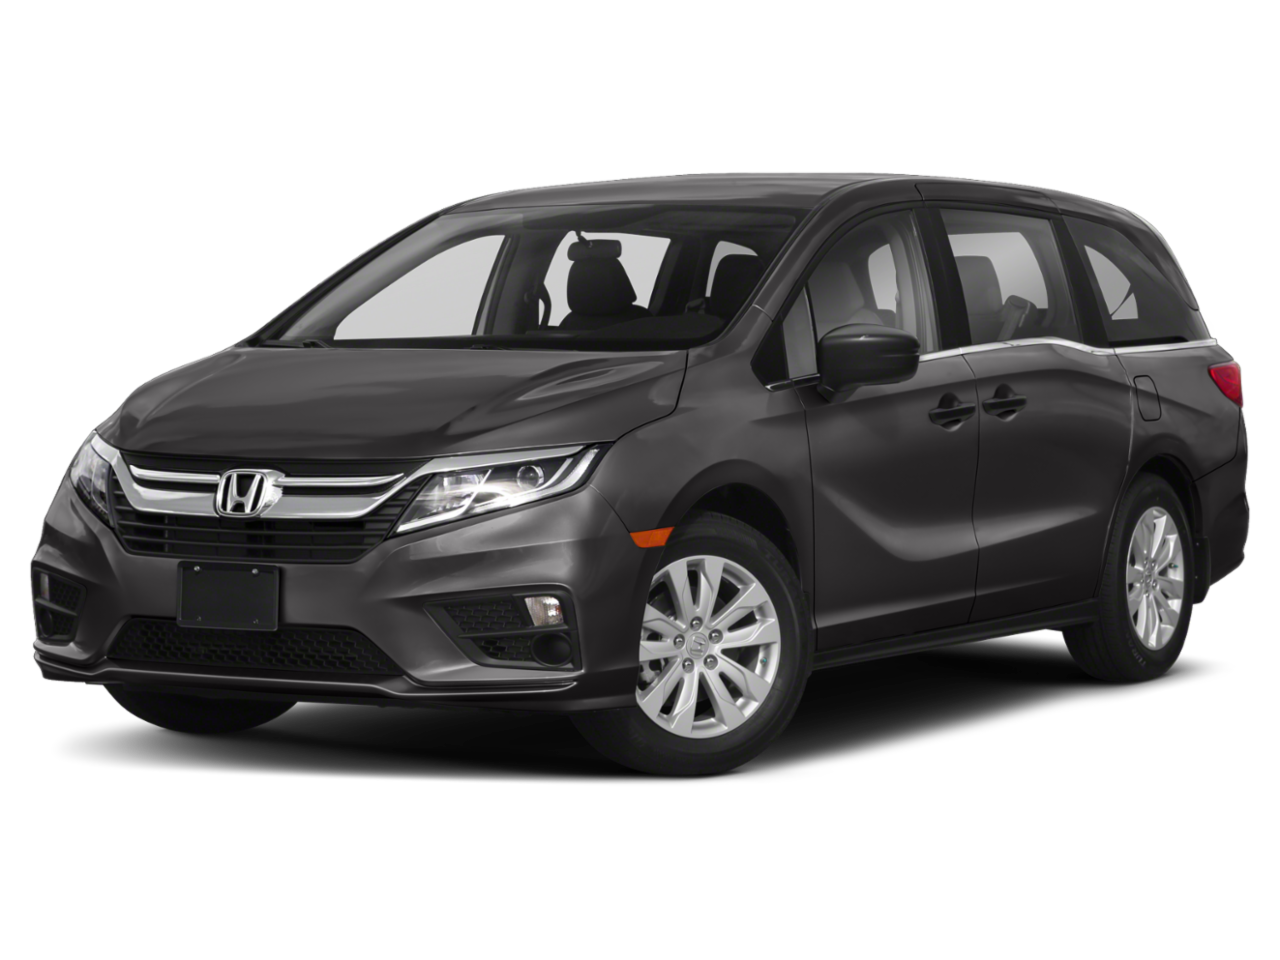 Honda Odyssey Lease >> New 2019 Honda Odyssey Lease And Finance Special Offer Near